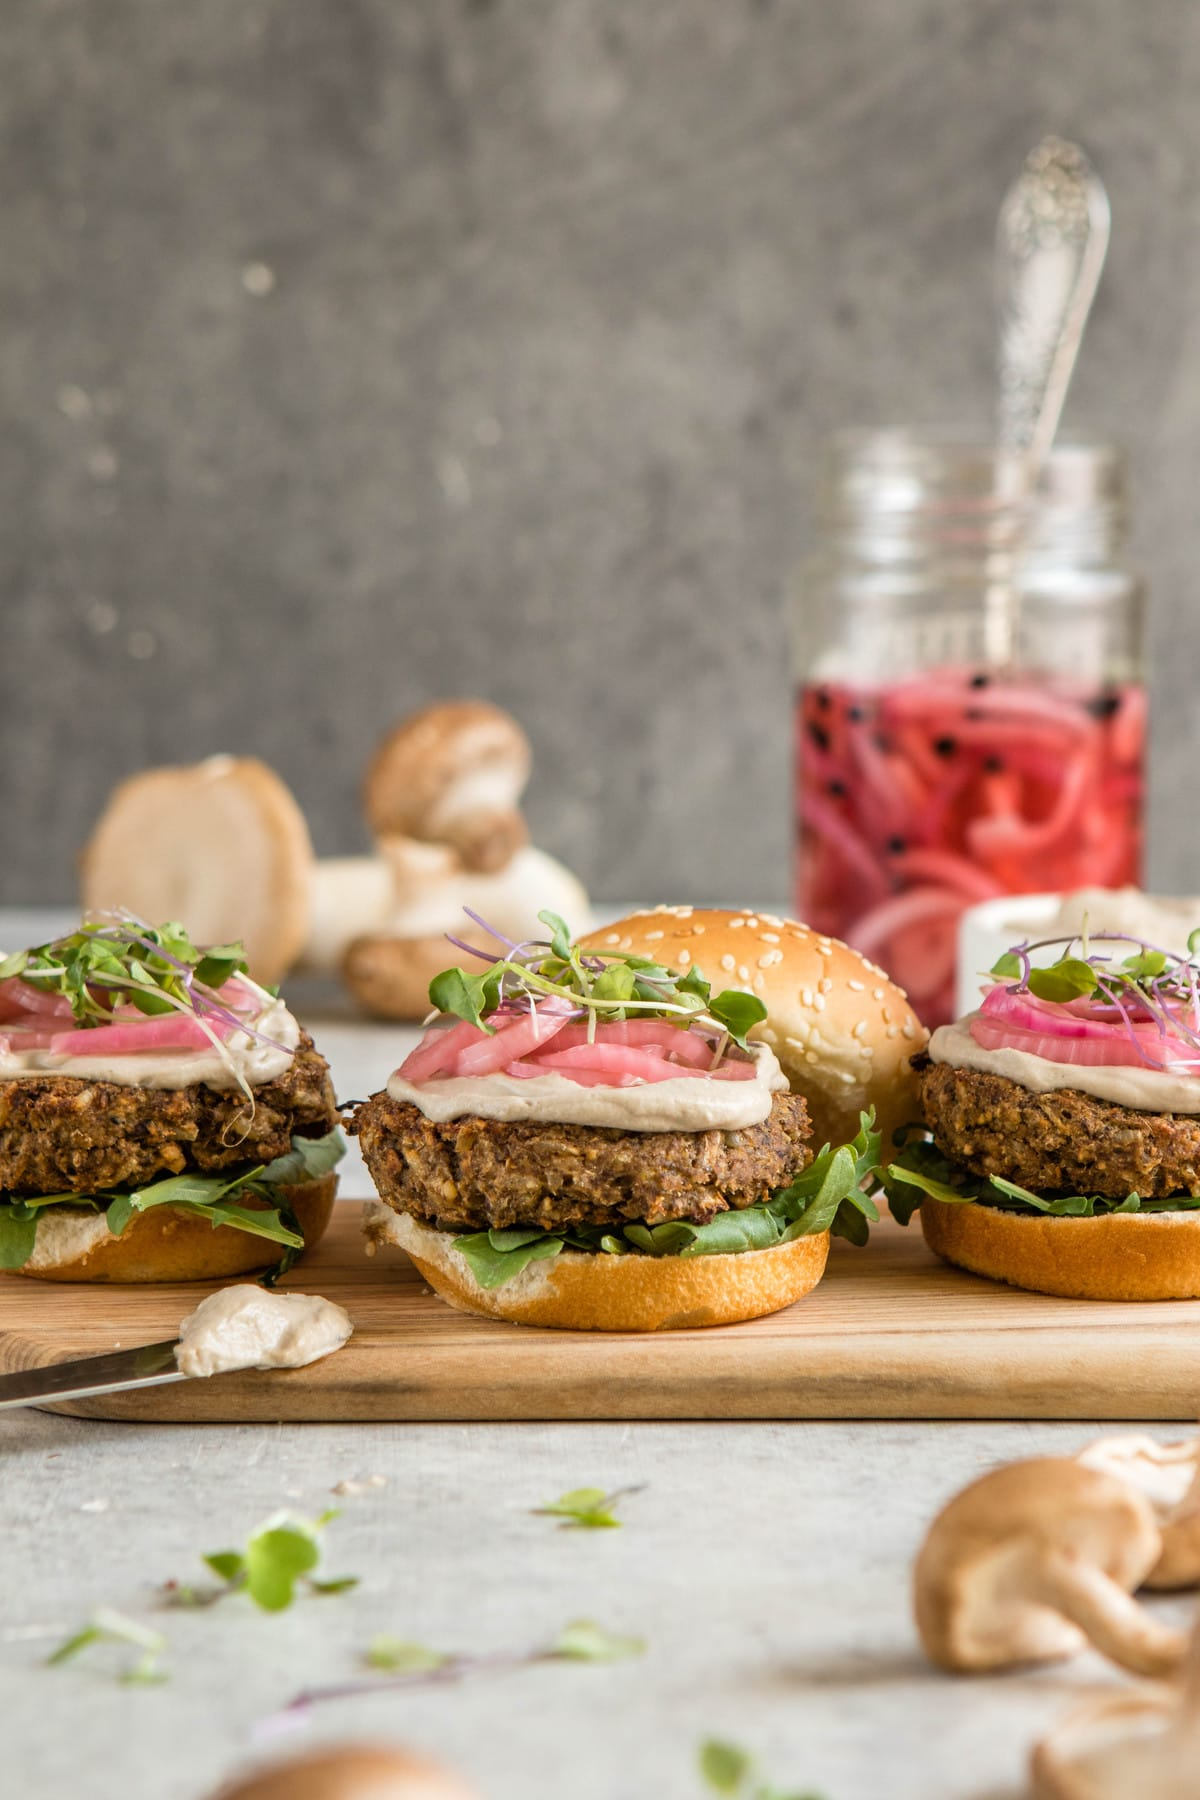 mushroom burgers on buns with pickled red onions